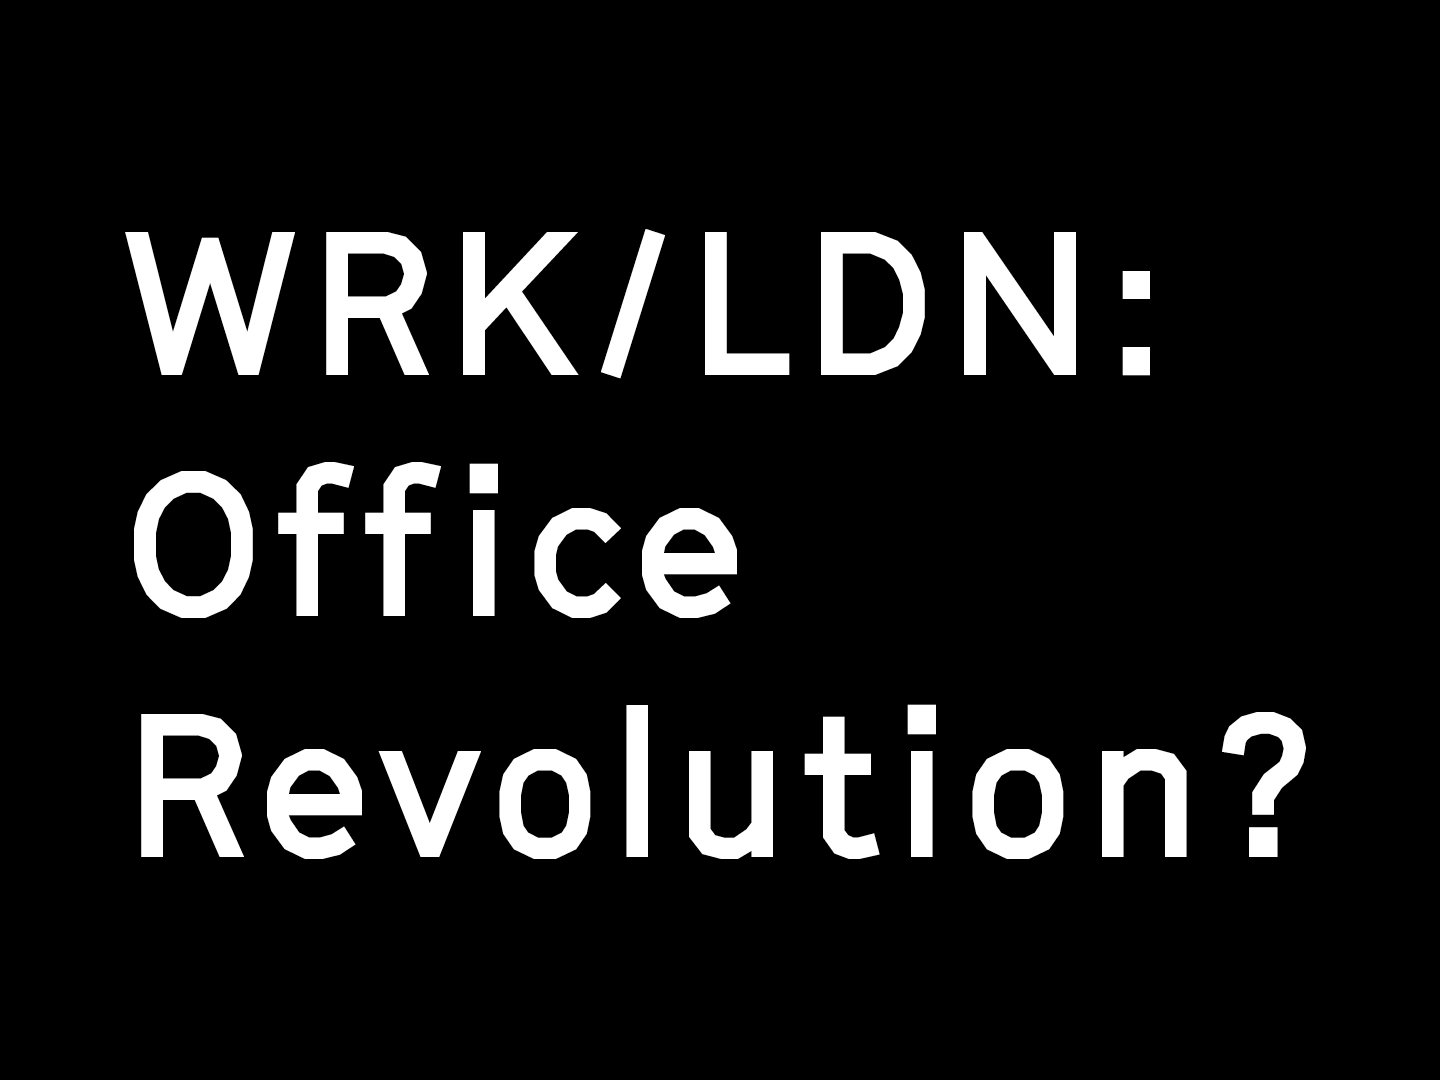 WRK/LDN: office revolution? Deadline TODAY